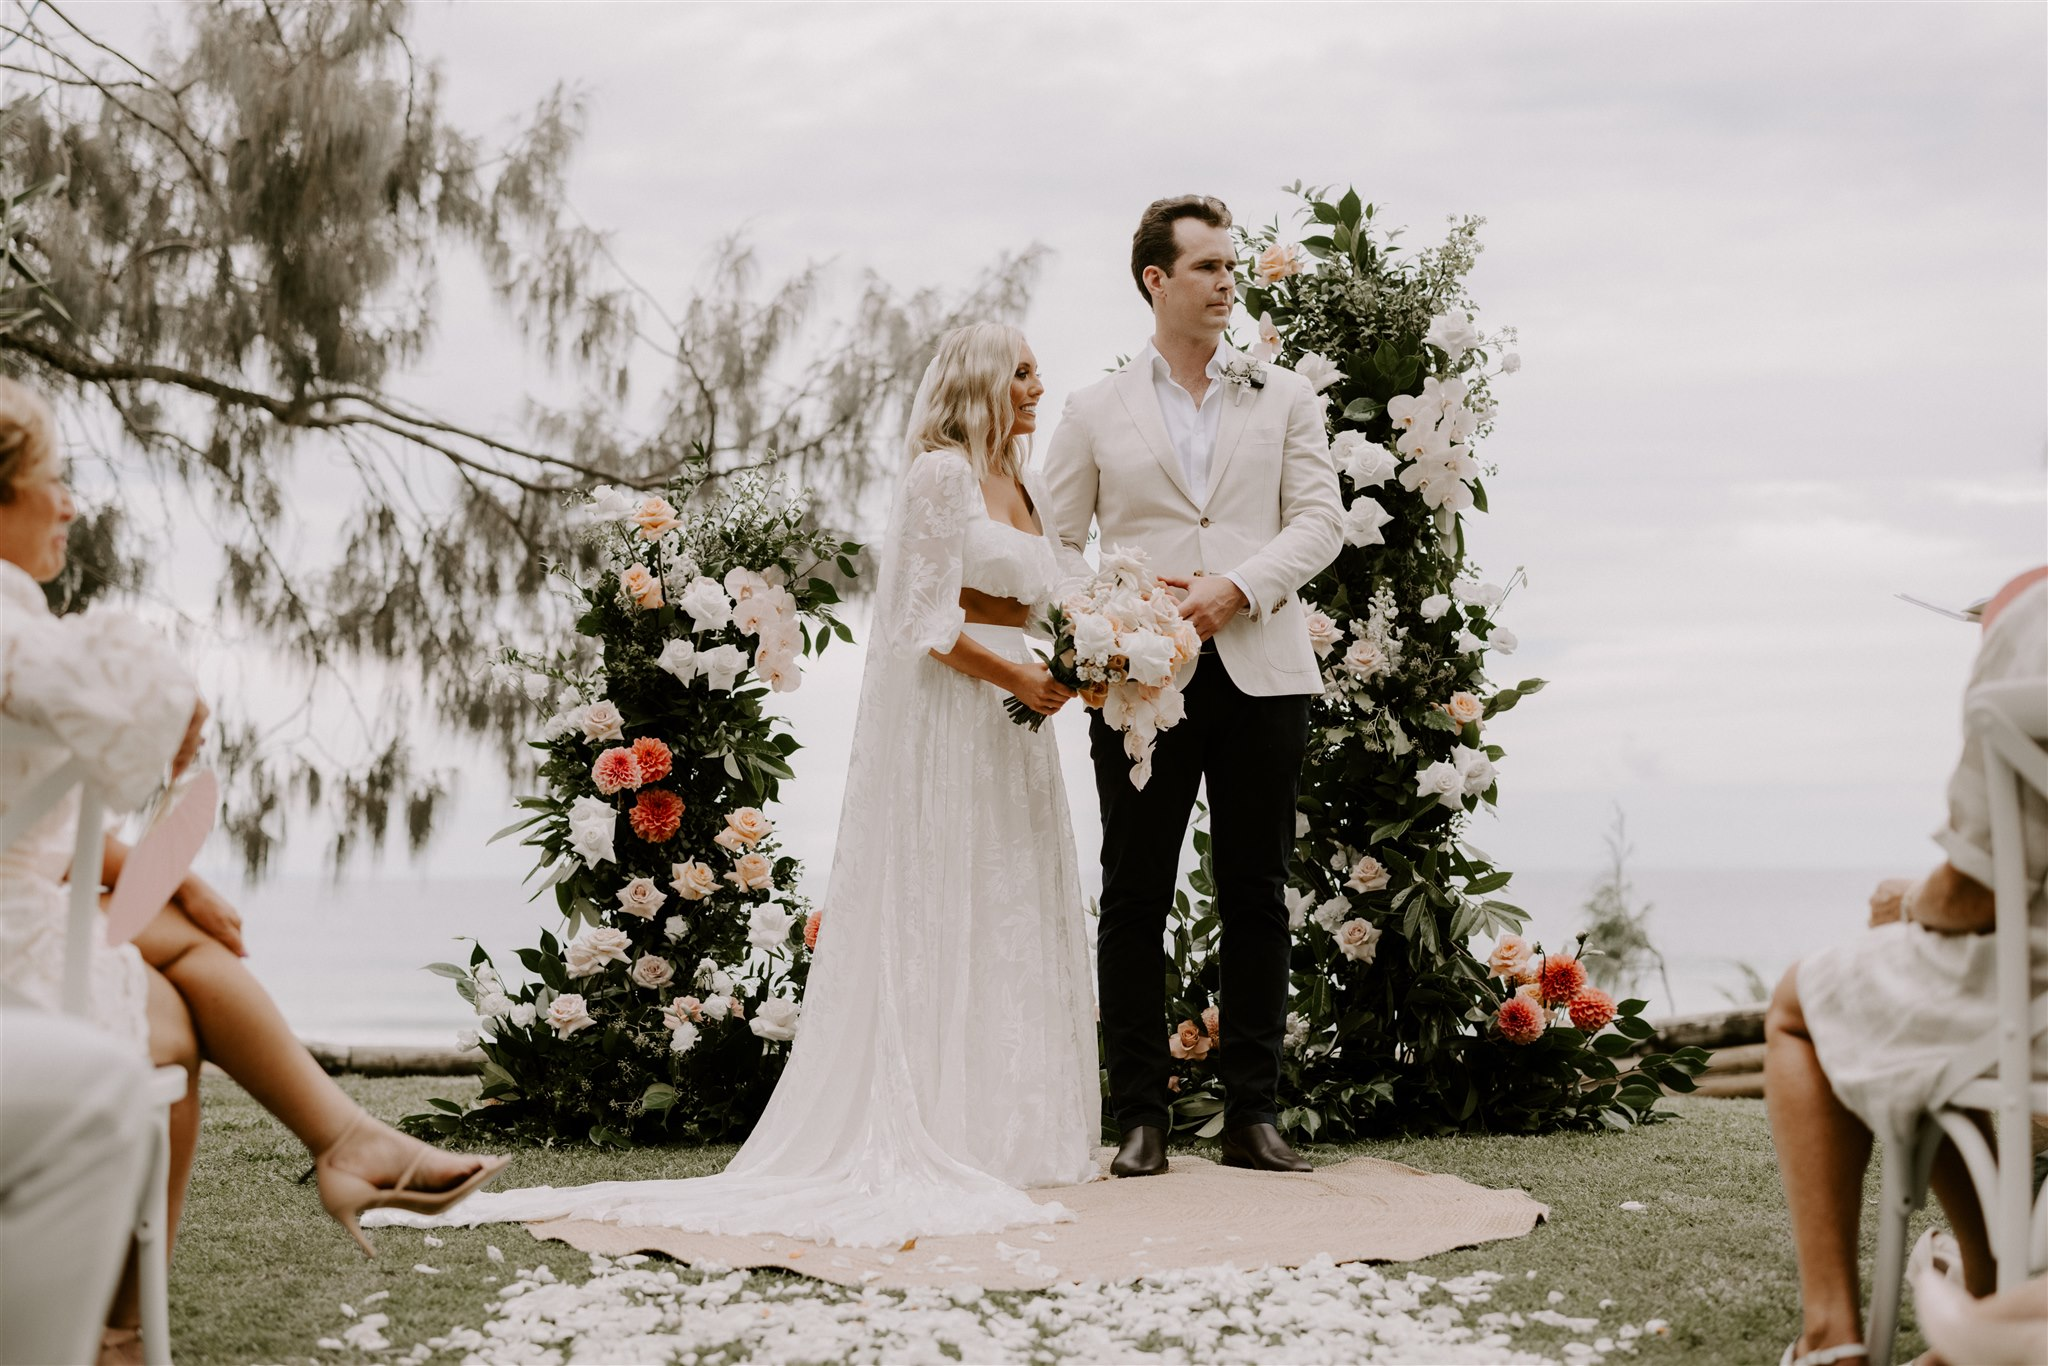 Steph and Will's Private Property Wedding